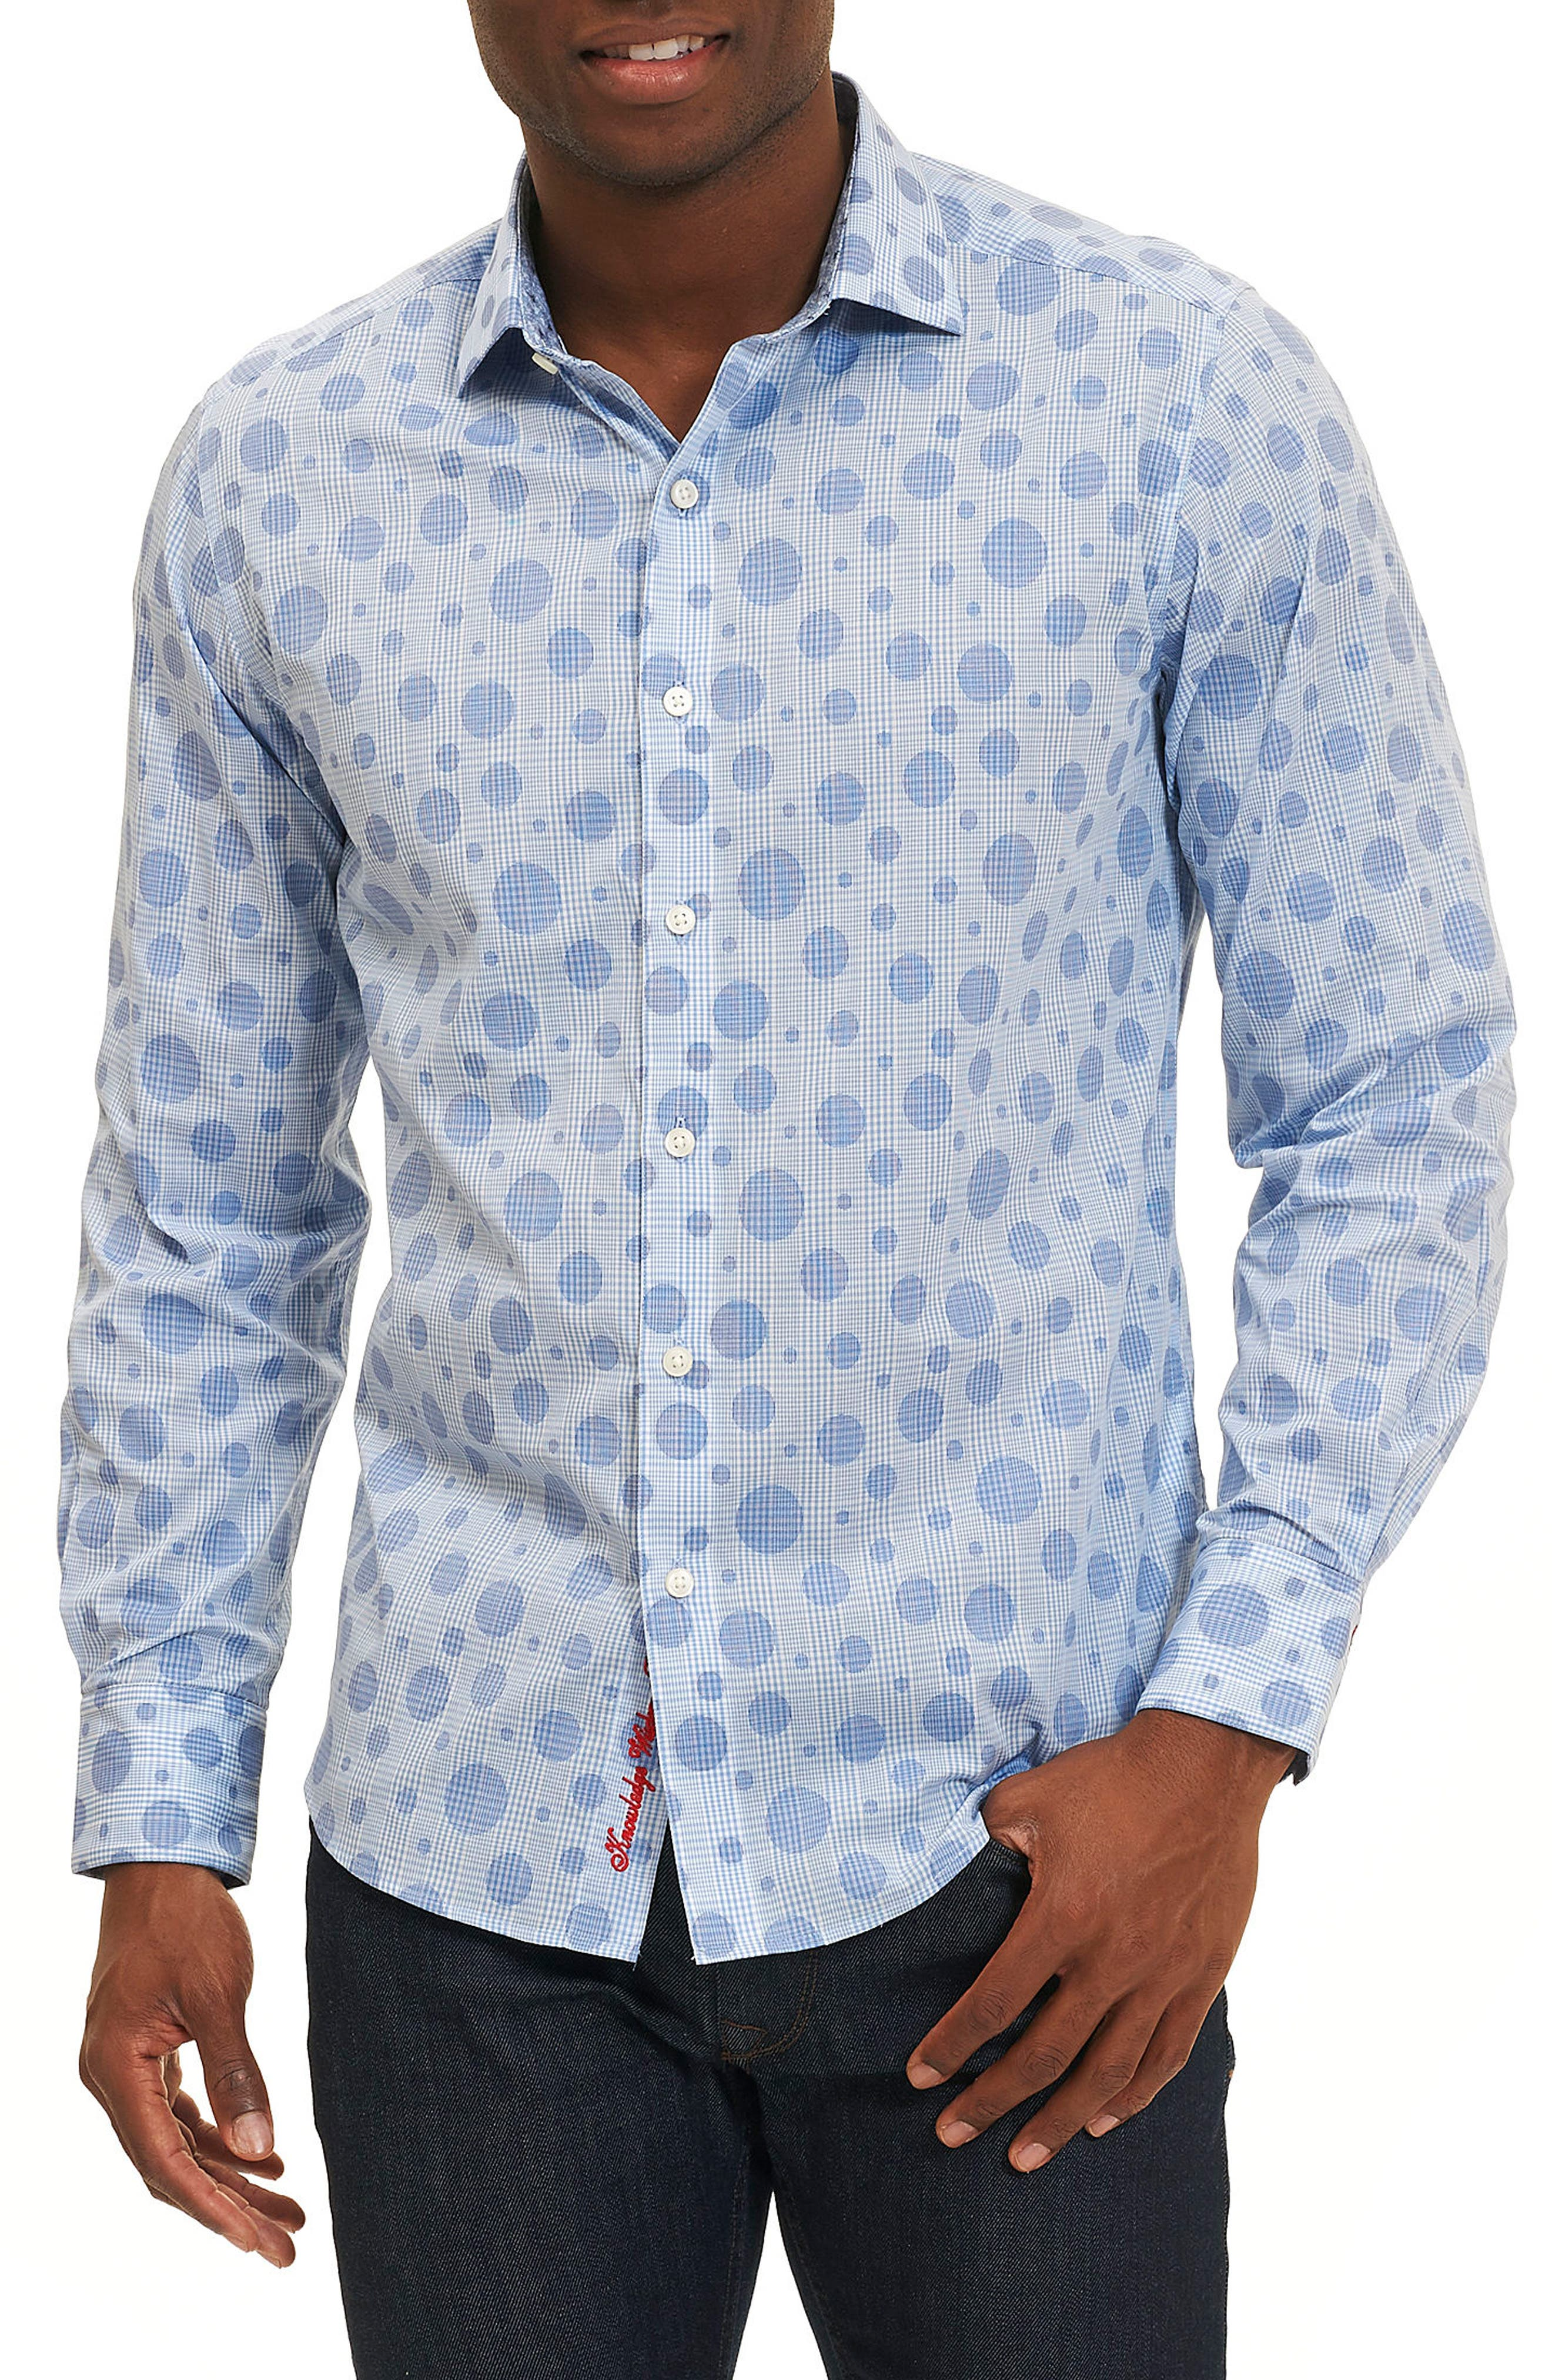 Phillip Print Sport Shirt,                         Main,                         color, 400